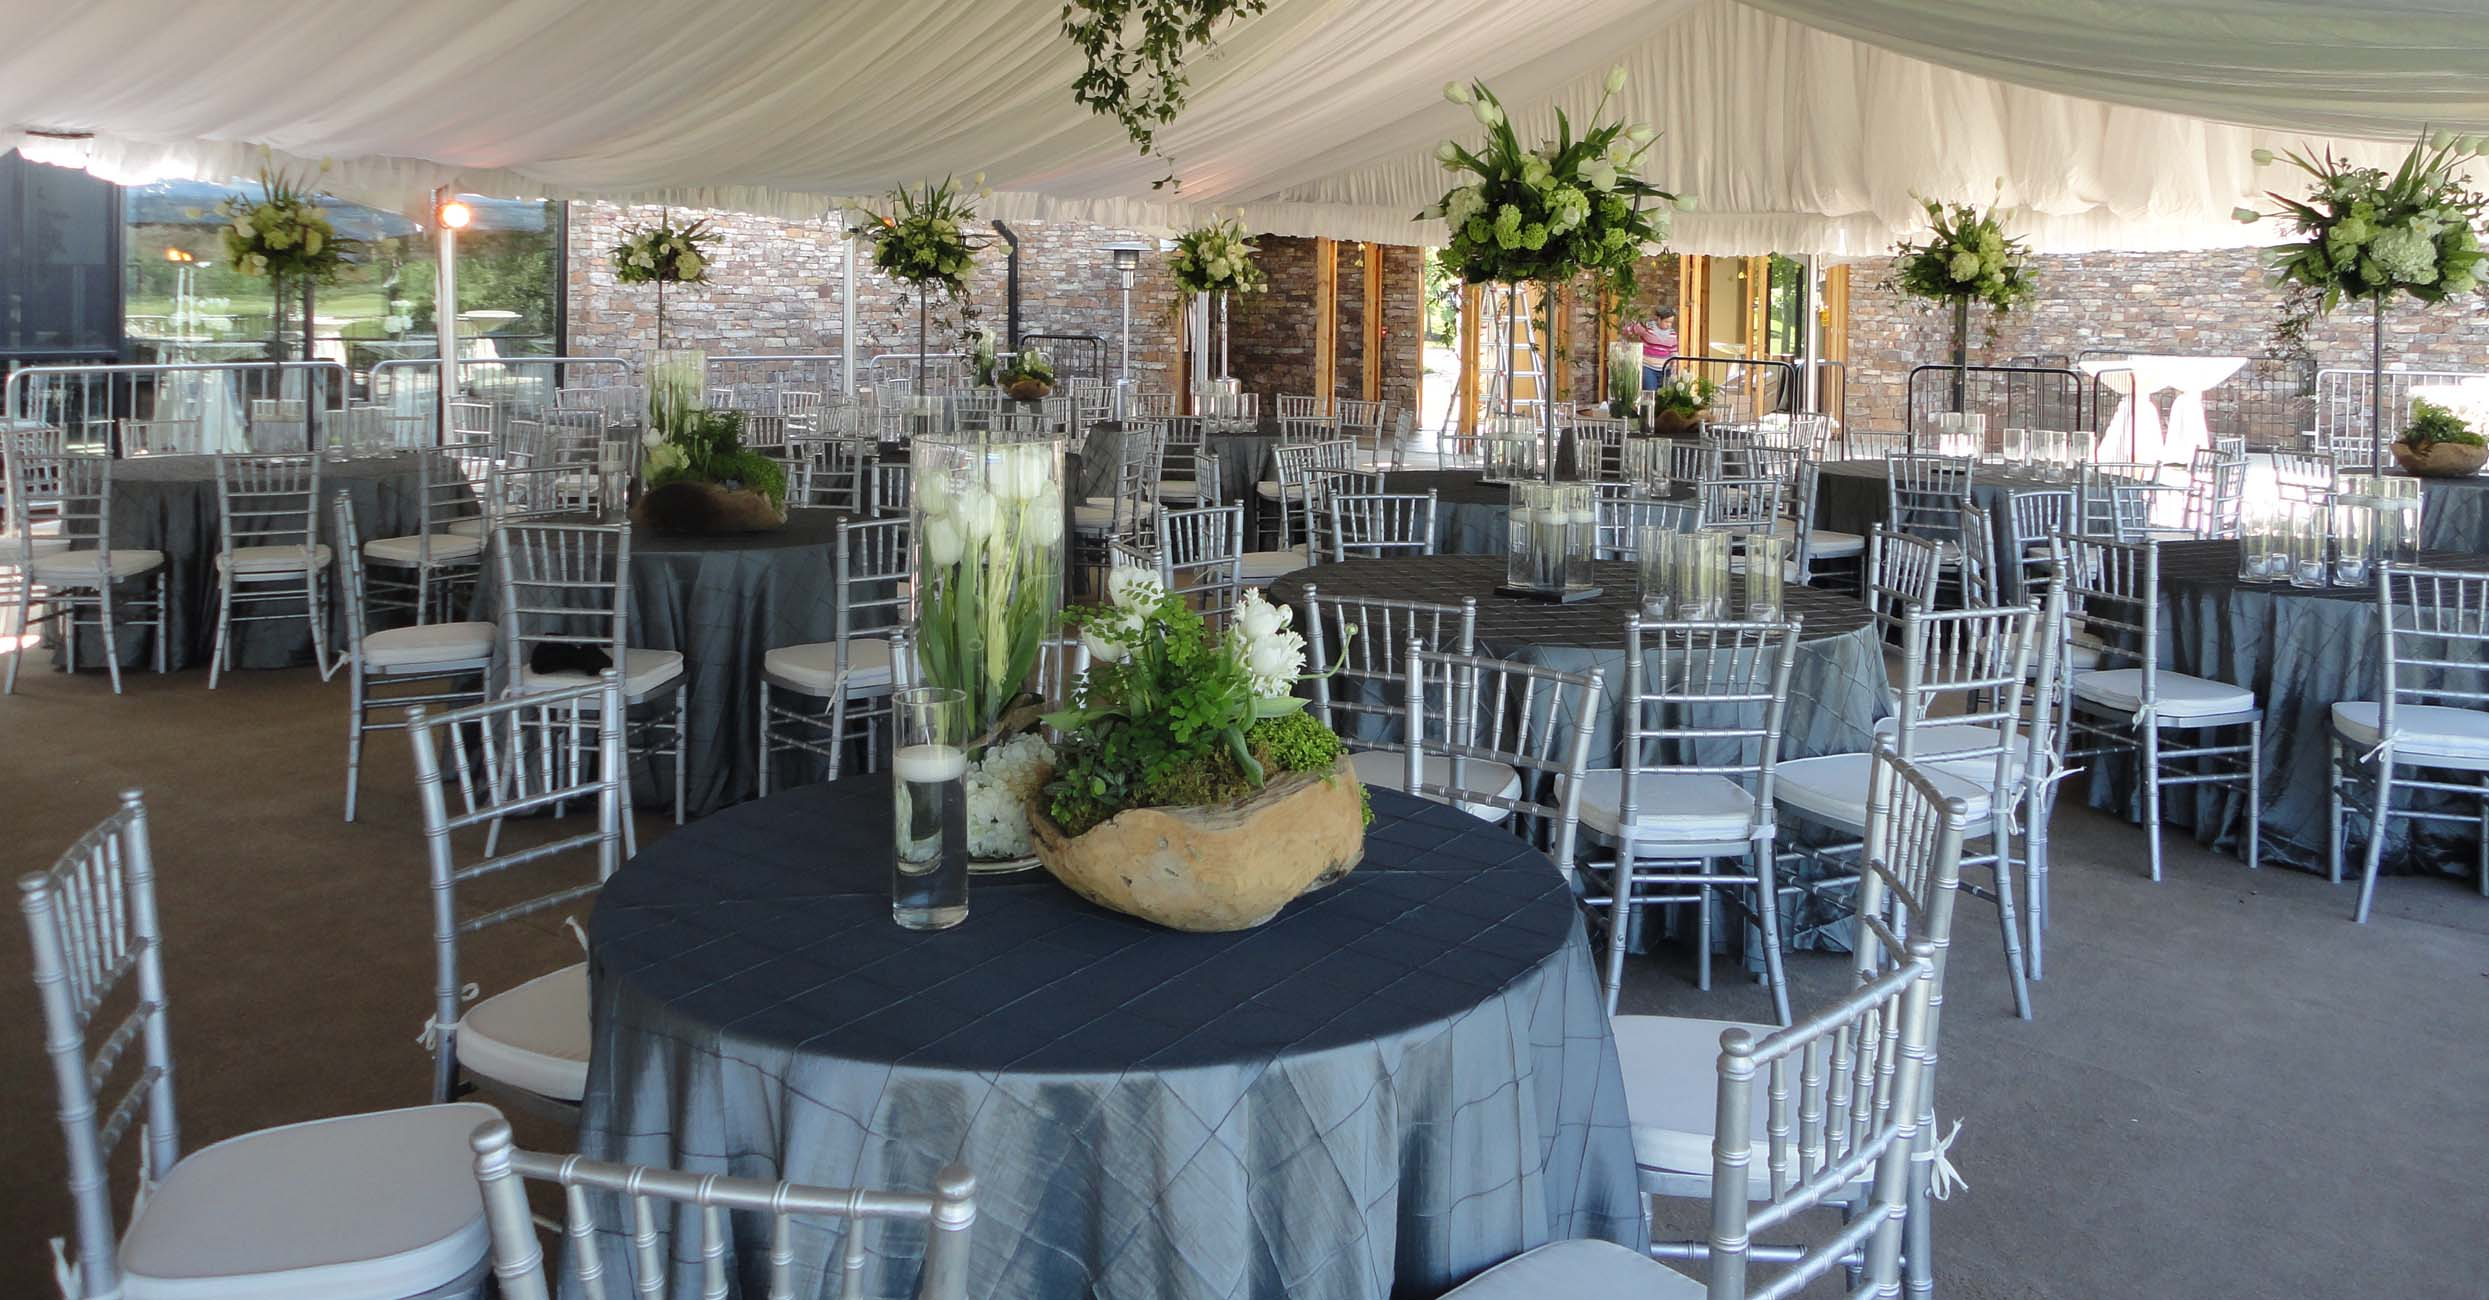 Ontario Event Center Catering Weddings Banquets Venues